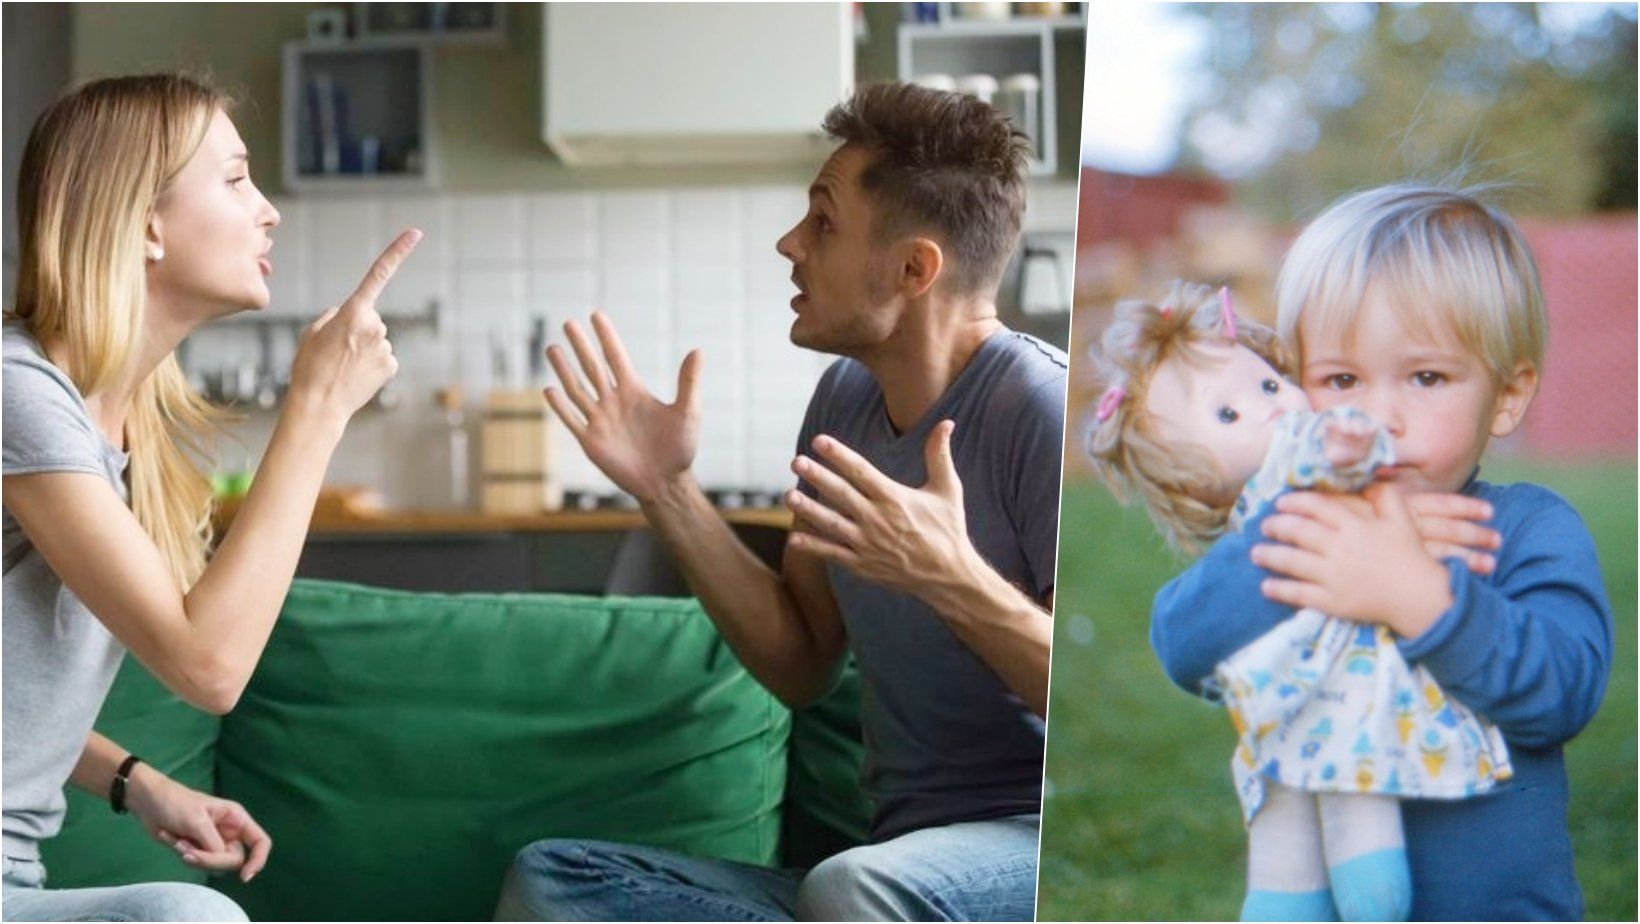 6 facebook cover 11.jpg?resize=1200,630 - A Mother Was Furious After Her Husband Tells Her She's Not Allowed To Buy Dolls For Their Son